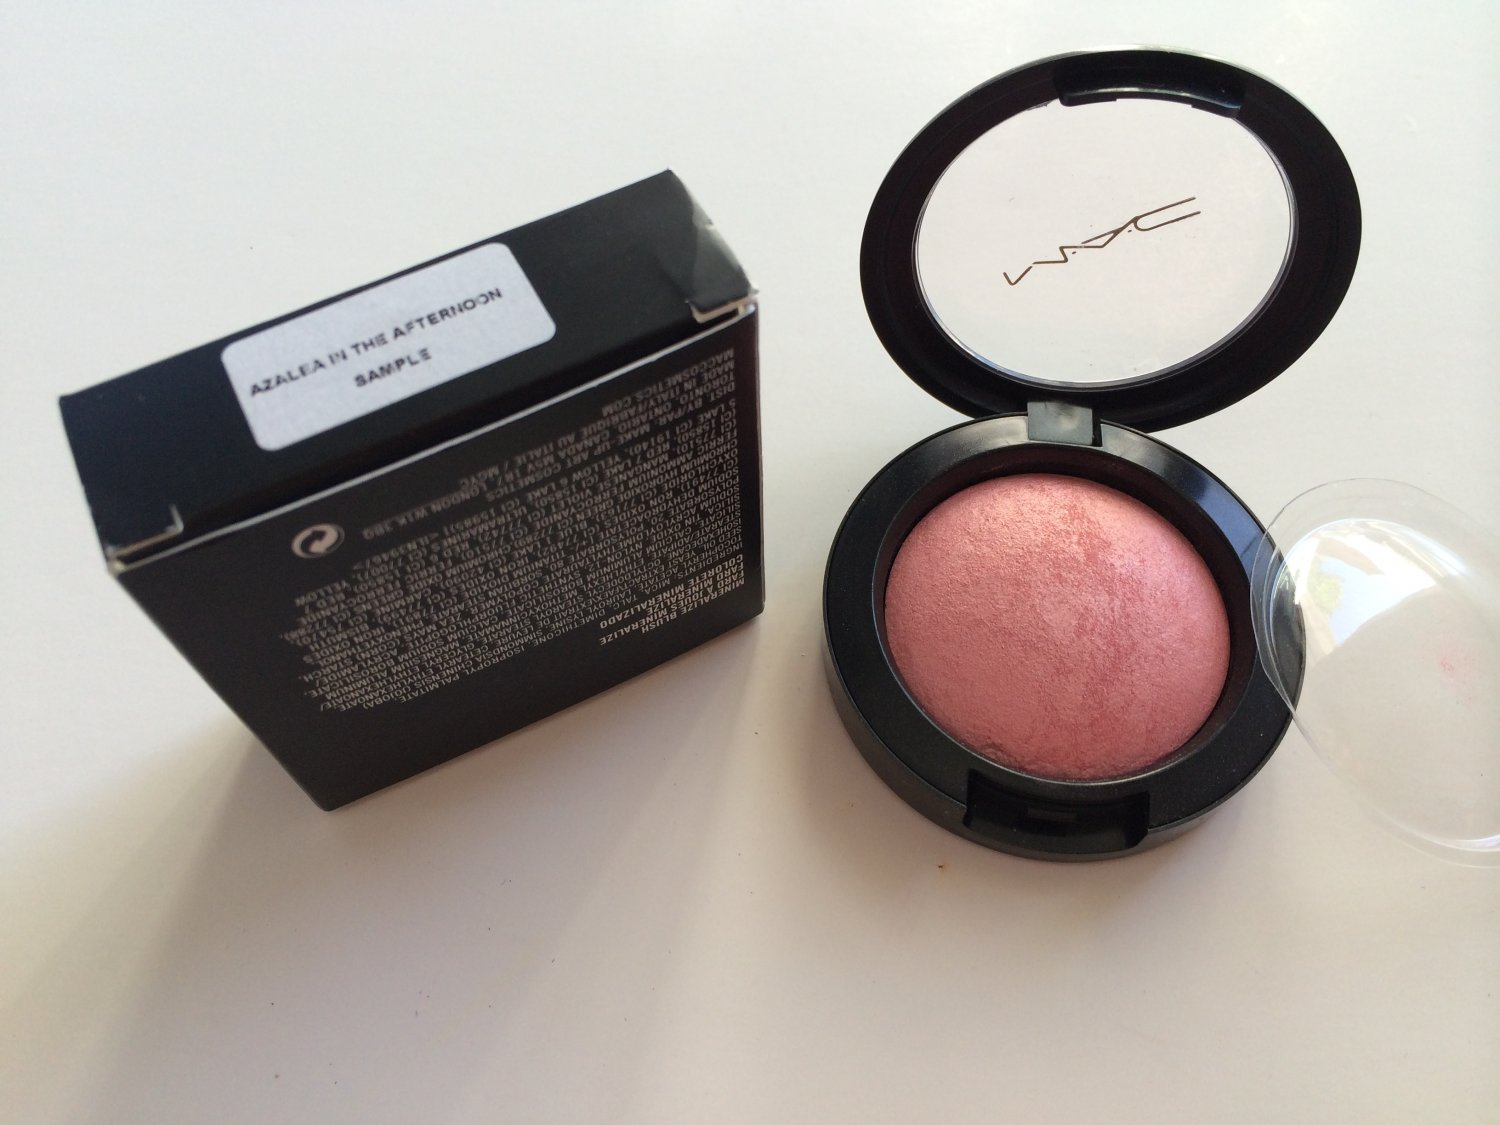 MAC Mineralize Blush - Azalea in the Afternoon (Boxed and marked sample)